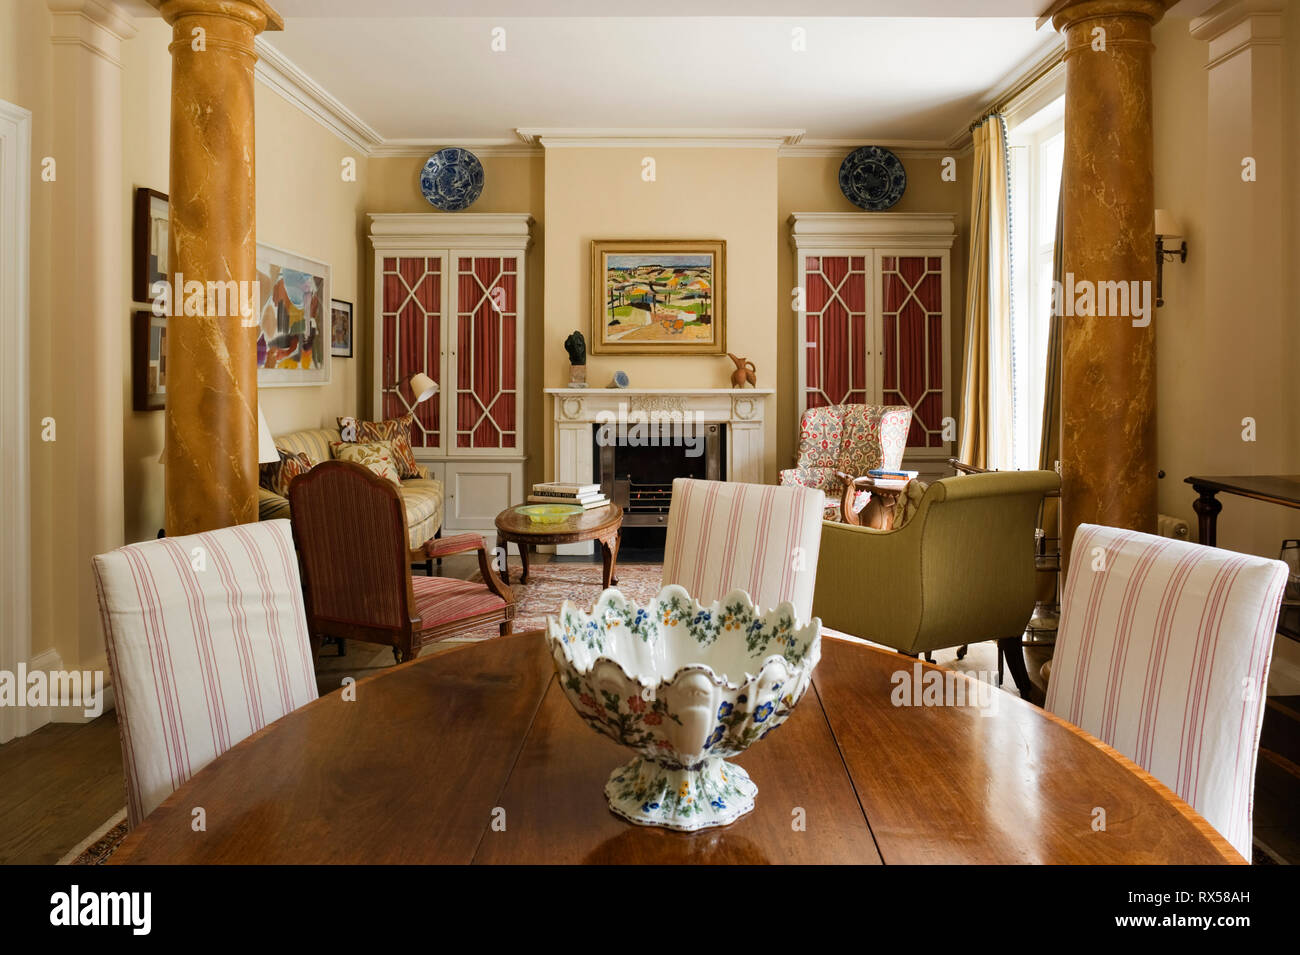 Country style dining room with striped chairs Stock Photo ...